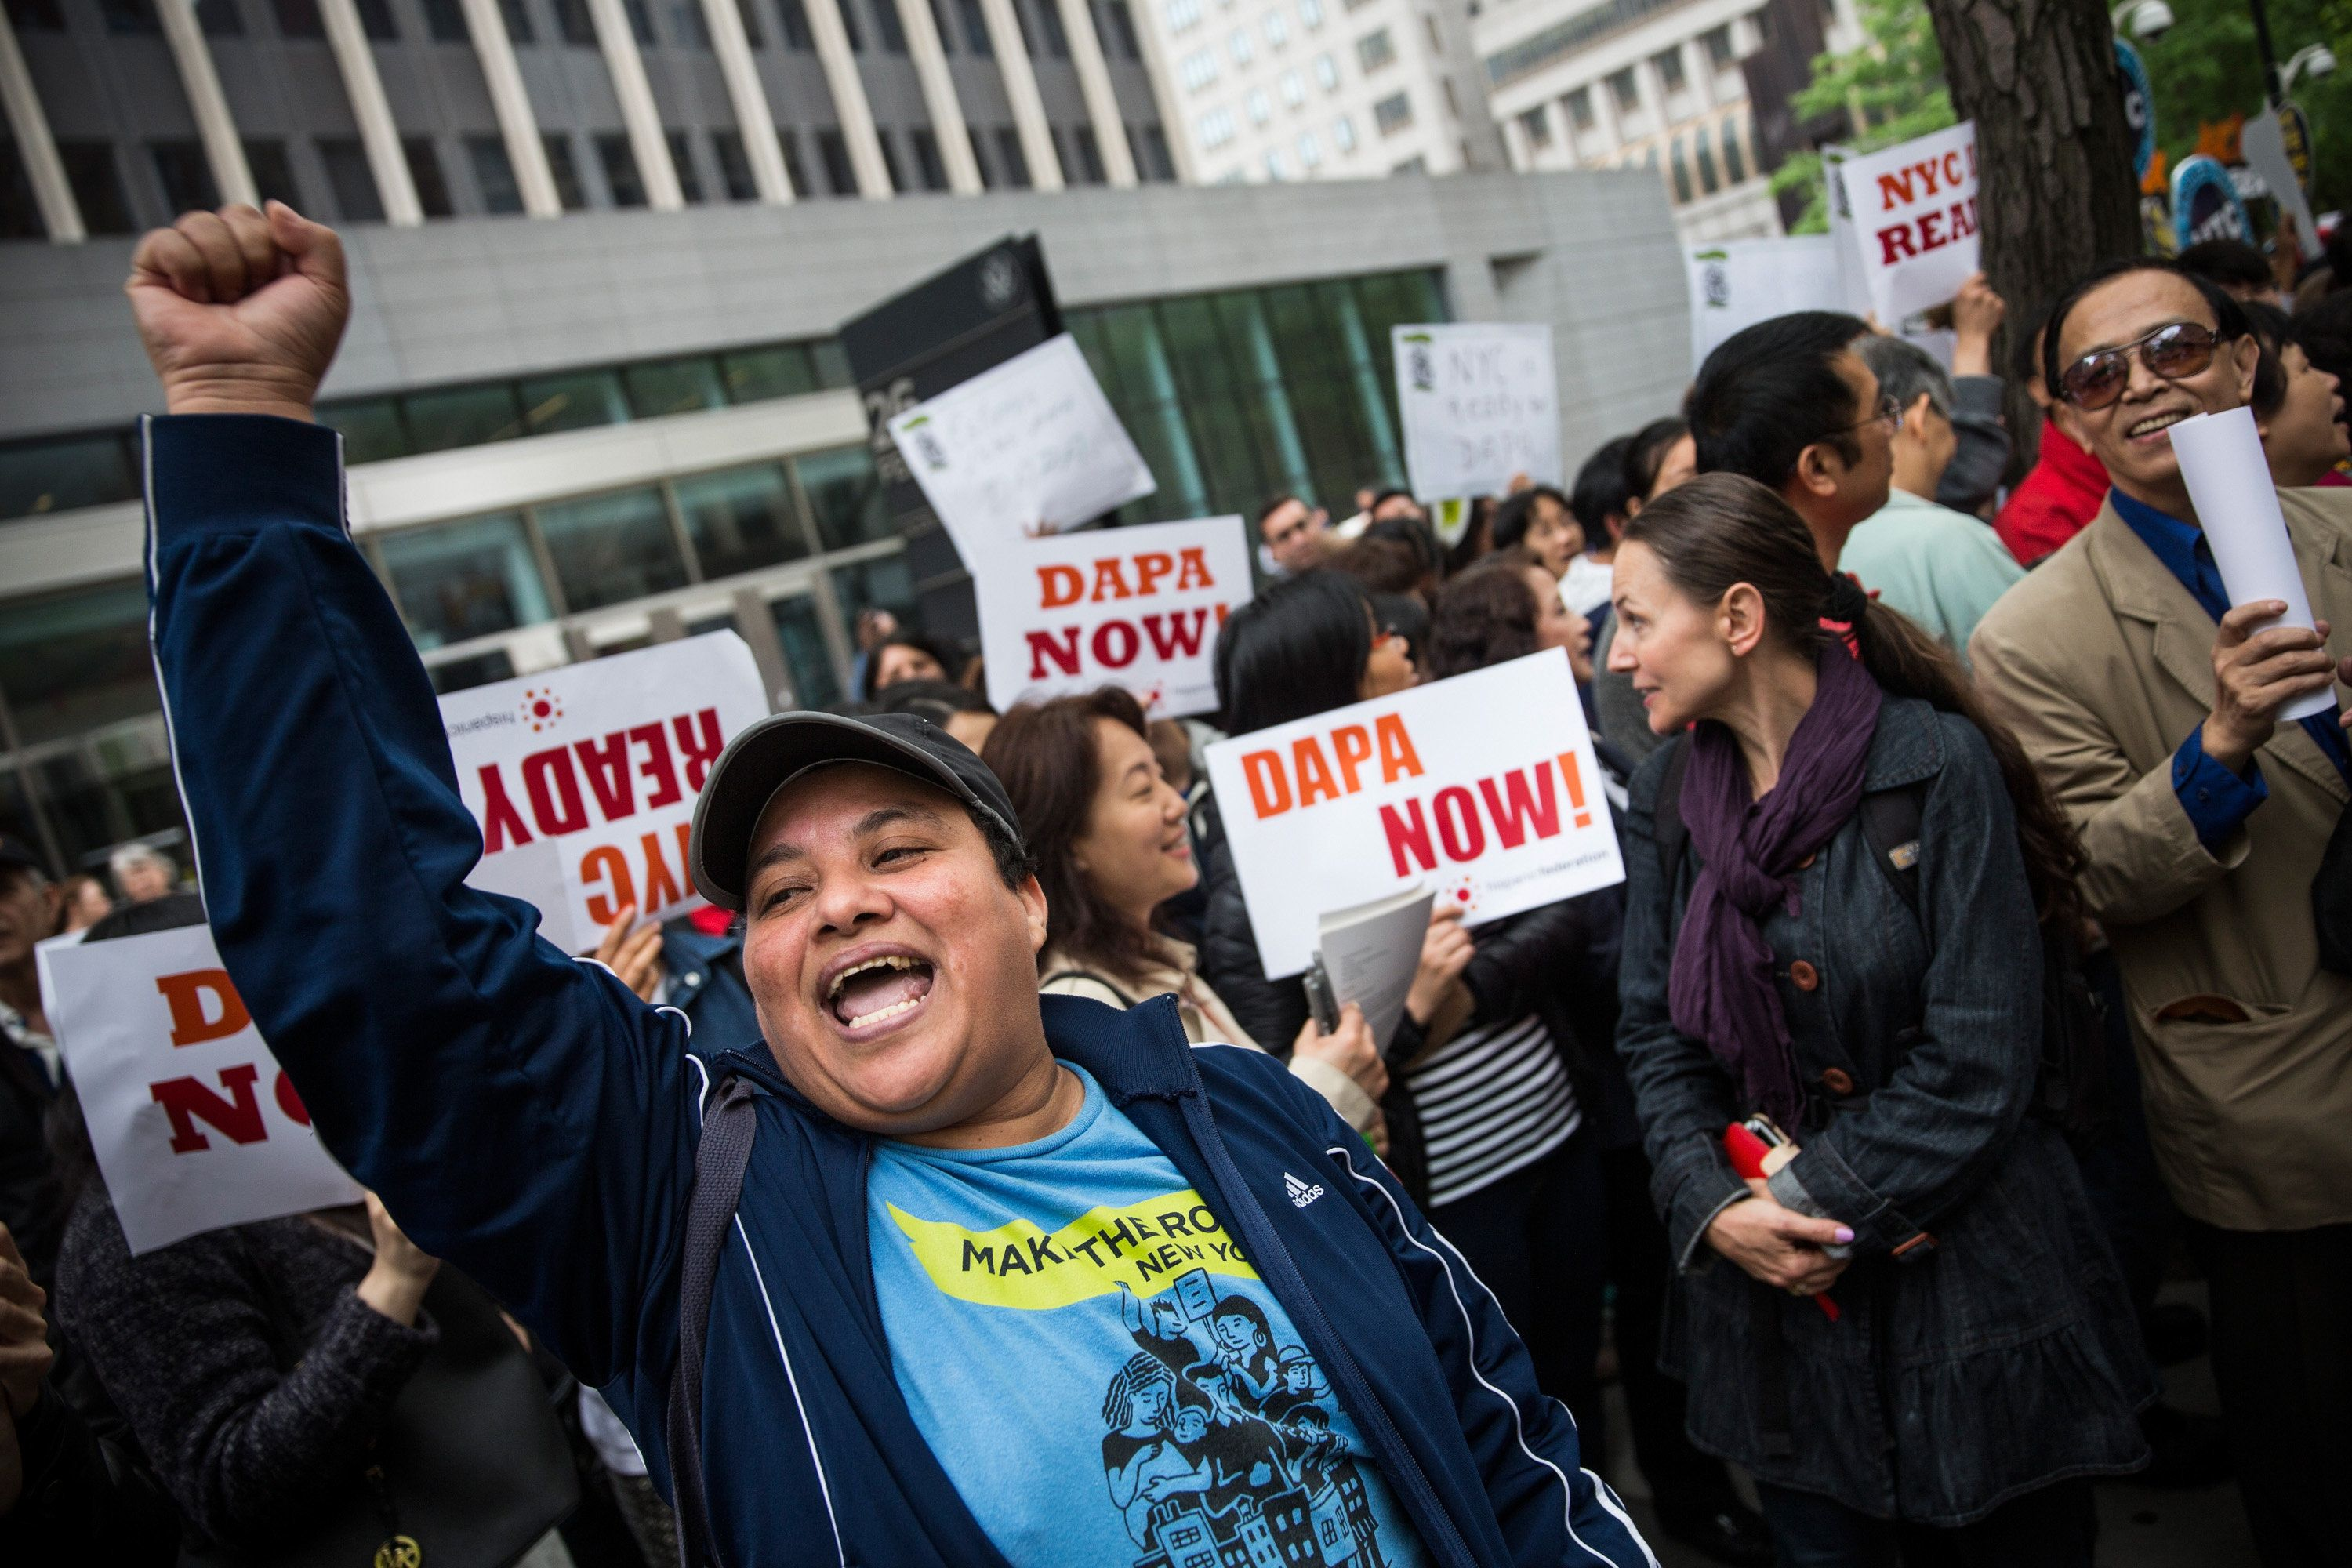 NEW YORK, NY - MAY 19:  Activists calling for federal judges to reject challenges to President Obama's 'Deferred Action for Parents of Americans and Lawful Permanent Residents' (DAPA) program protest outside the Jacob K. Javits Federal building, where naturalization ceremonies take place, on May 19, 2015 in New York City. DAPA, which has come under fire from conservatives, would create a system which would stop the deportation of certain immigrants who entered to U.S. illegally.  (Photo by Andrew Burton/Getty Images)